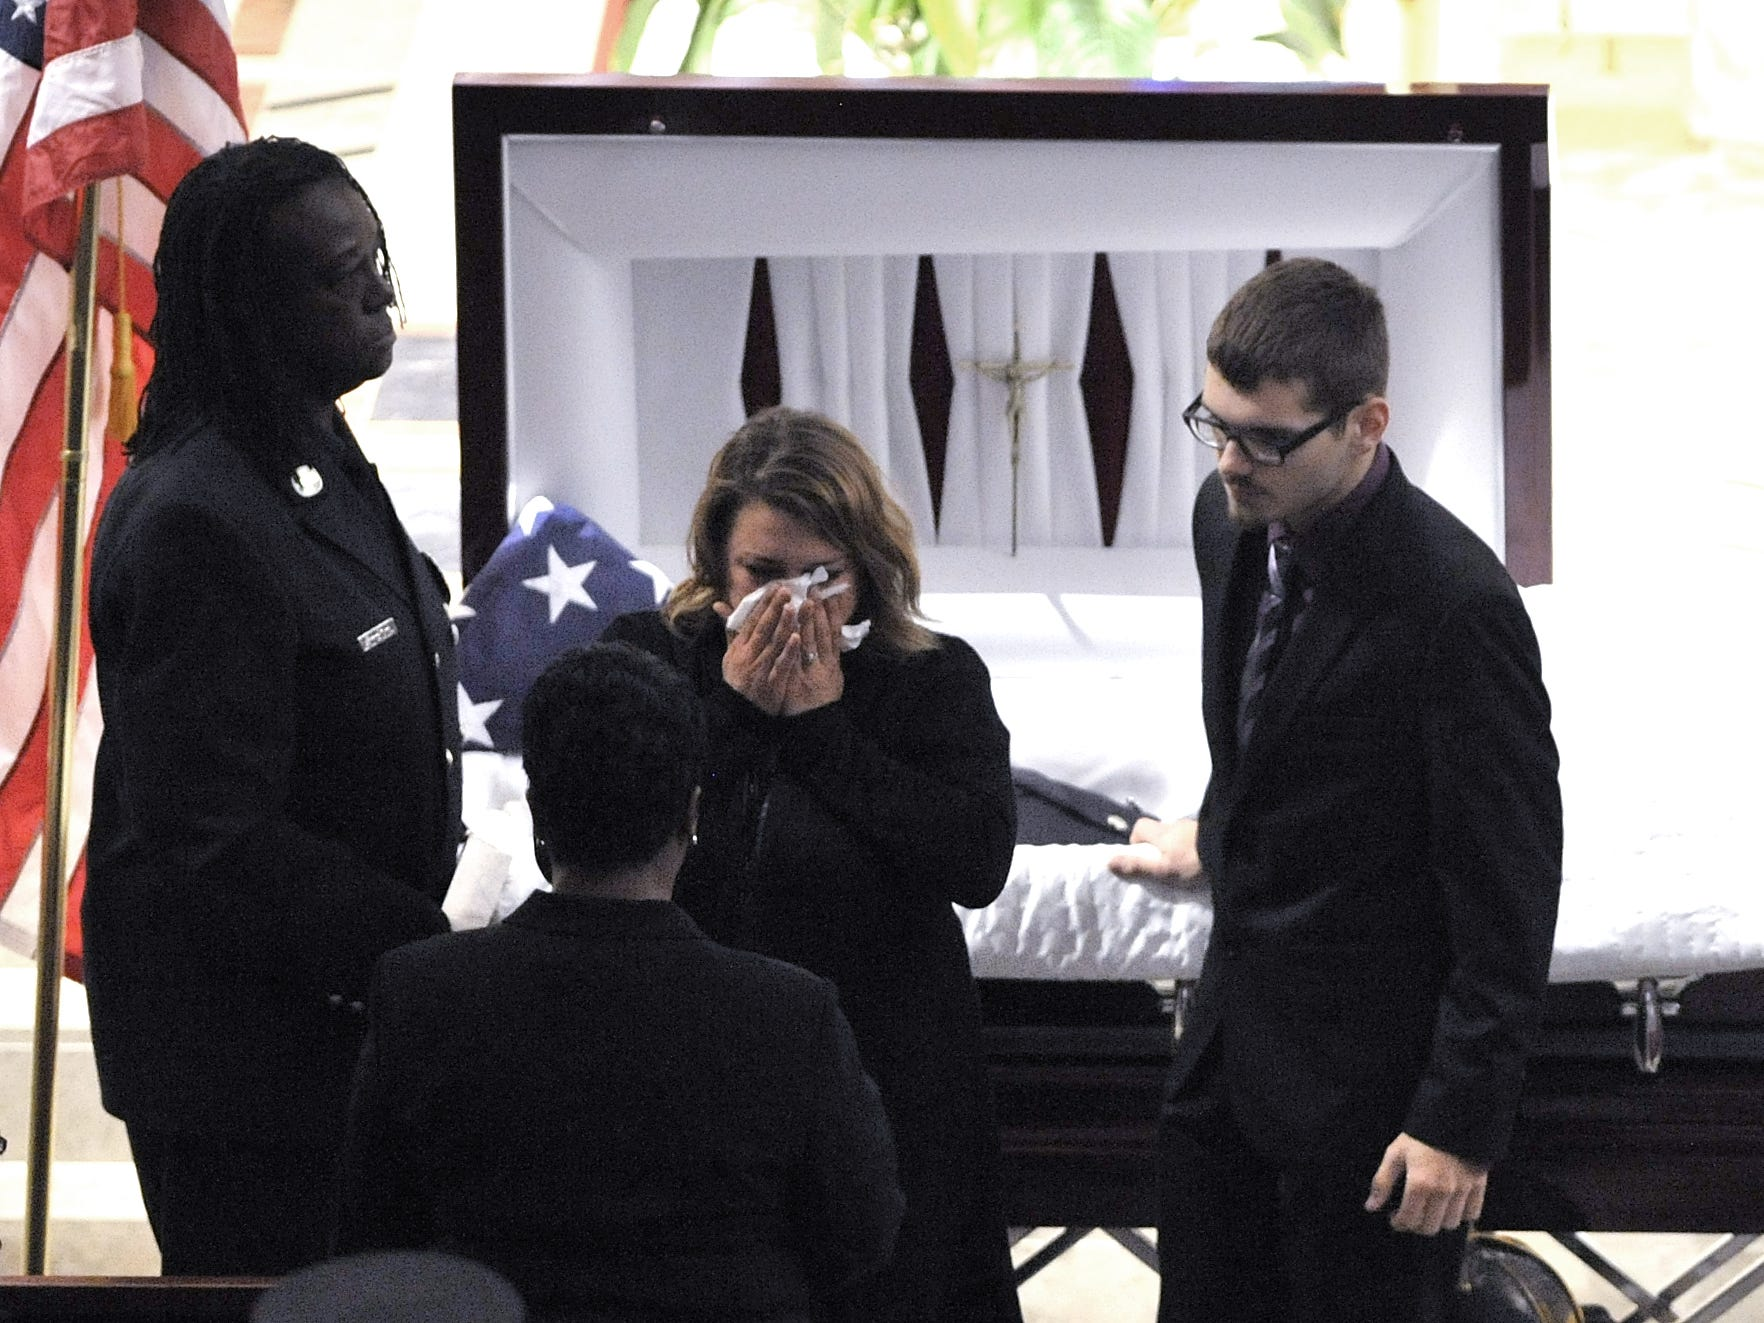 A loved one cries as she pays her respects before firefighters file into the church.